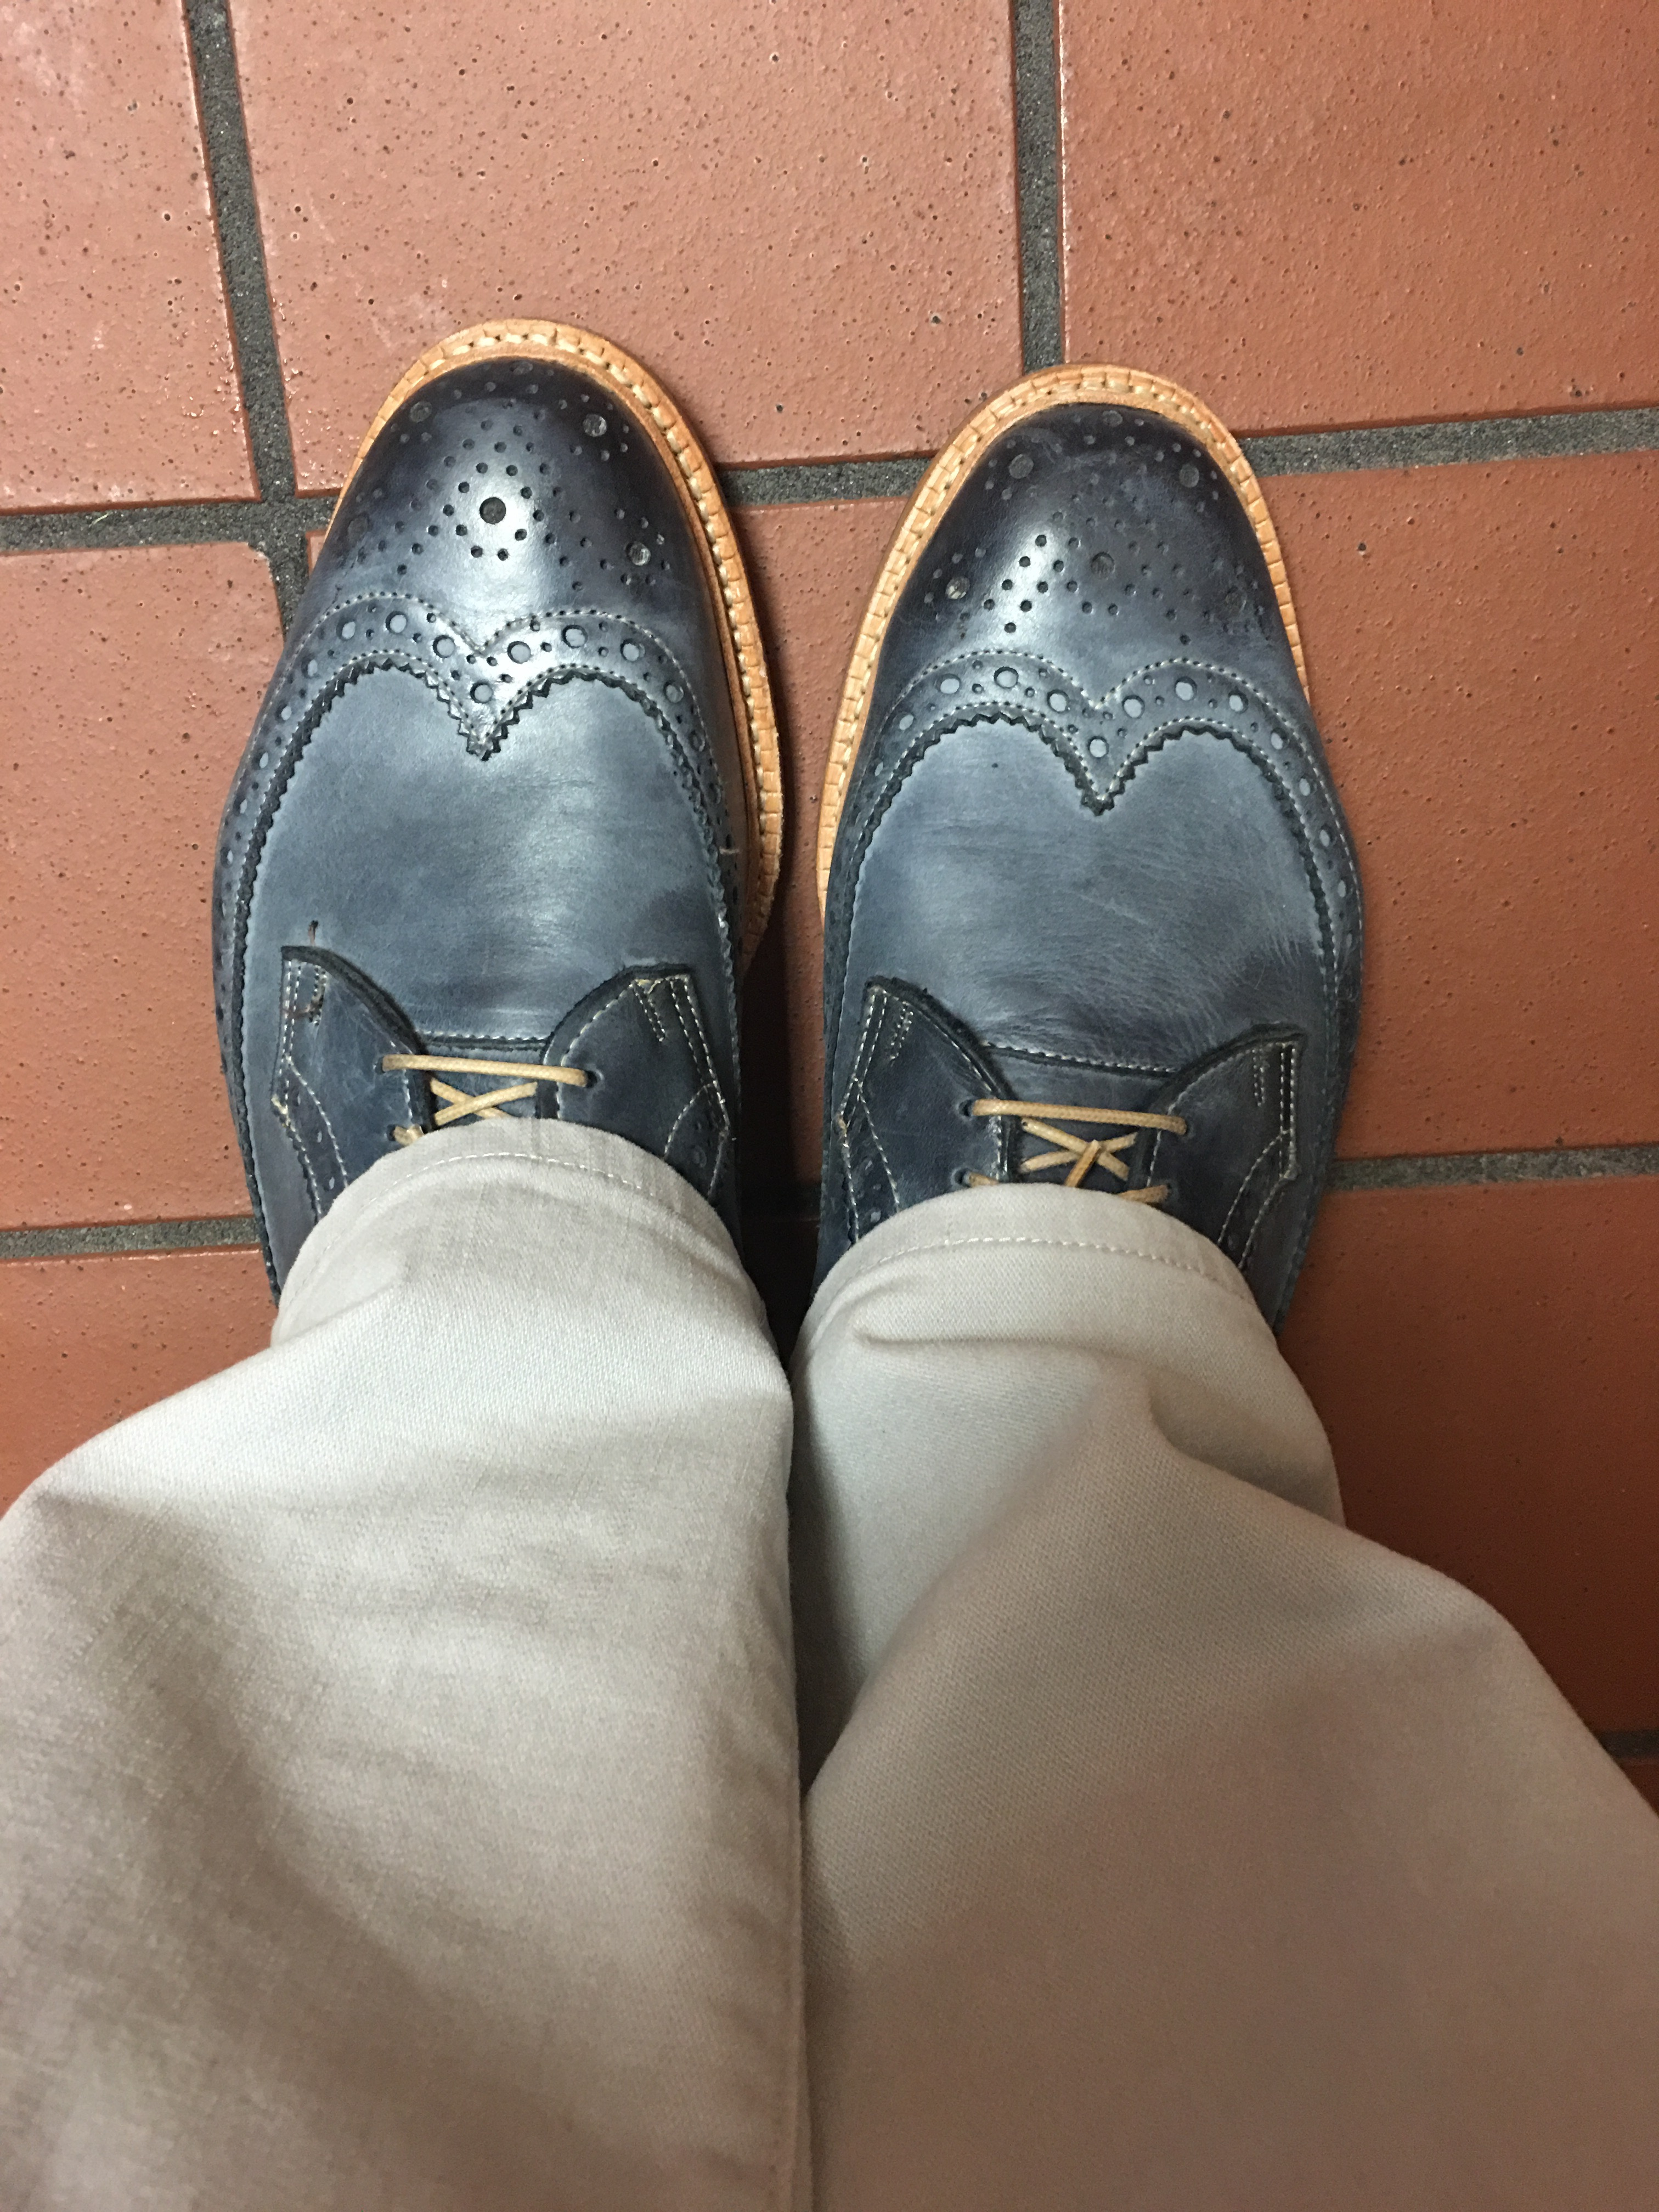 Scottyb06's photos in Allen Edmonds Appreciation Thread 2016 - News, Pictures, Sizing, Accessories, Clothing, etc